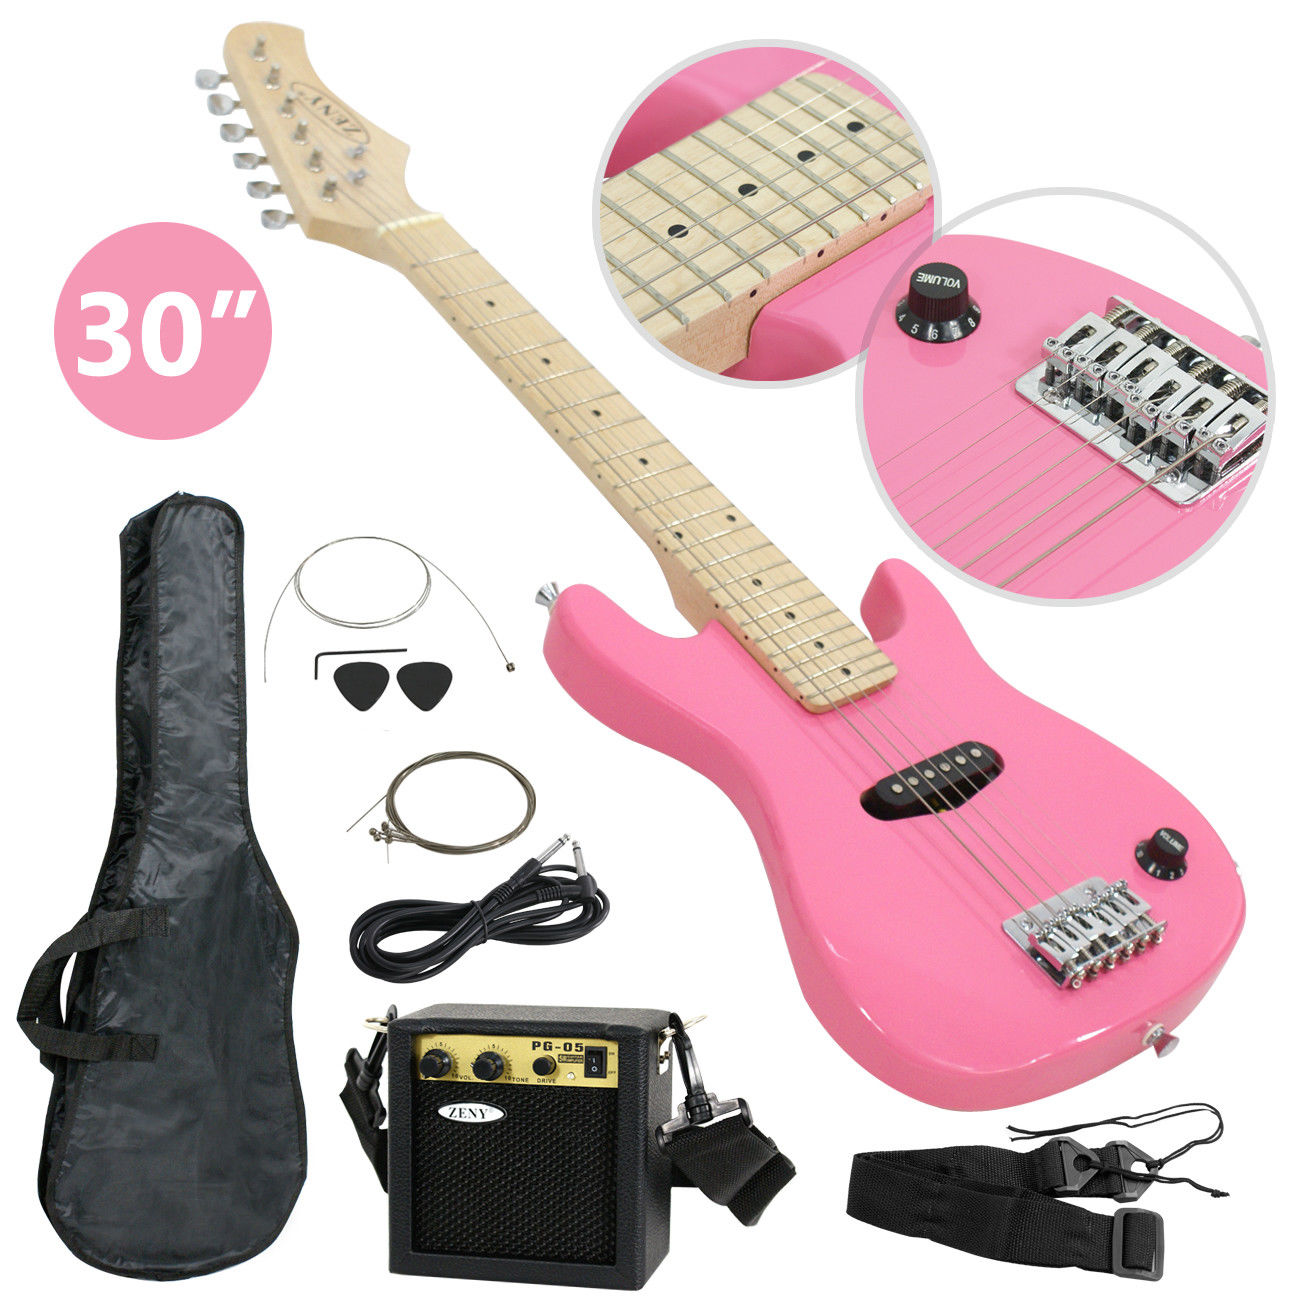 "ZENY 30"" Kids Pink Electric Guitar With 5w Amp & Much More Guitar Combo Accessory Kit"